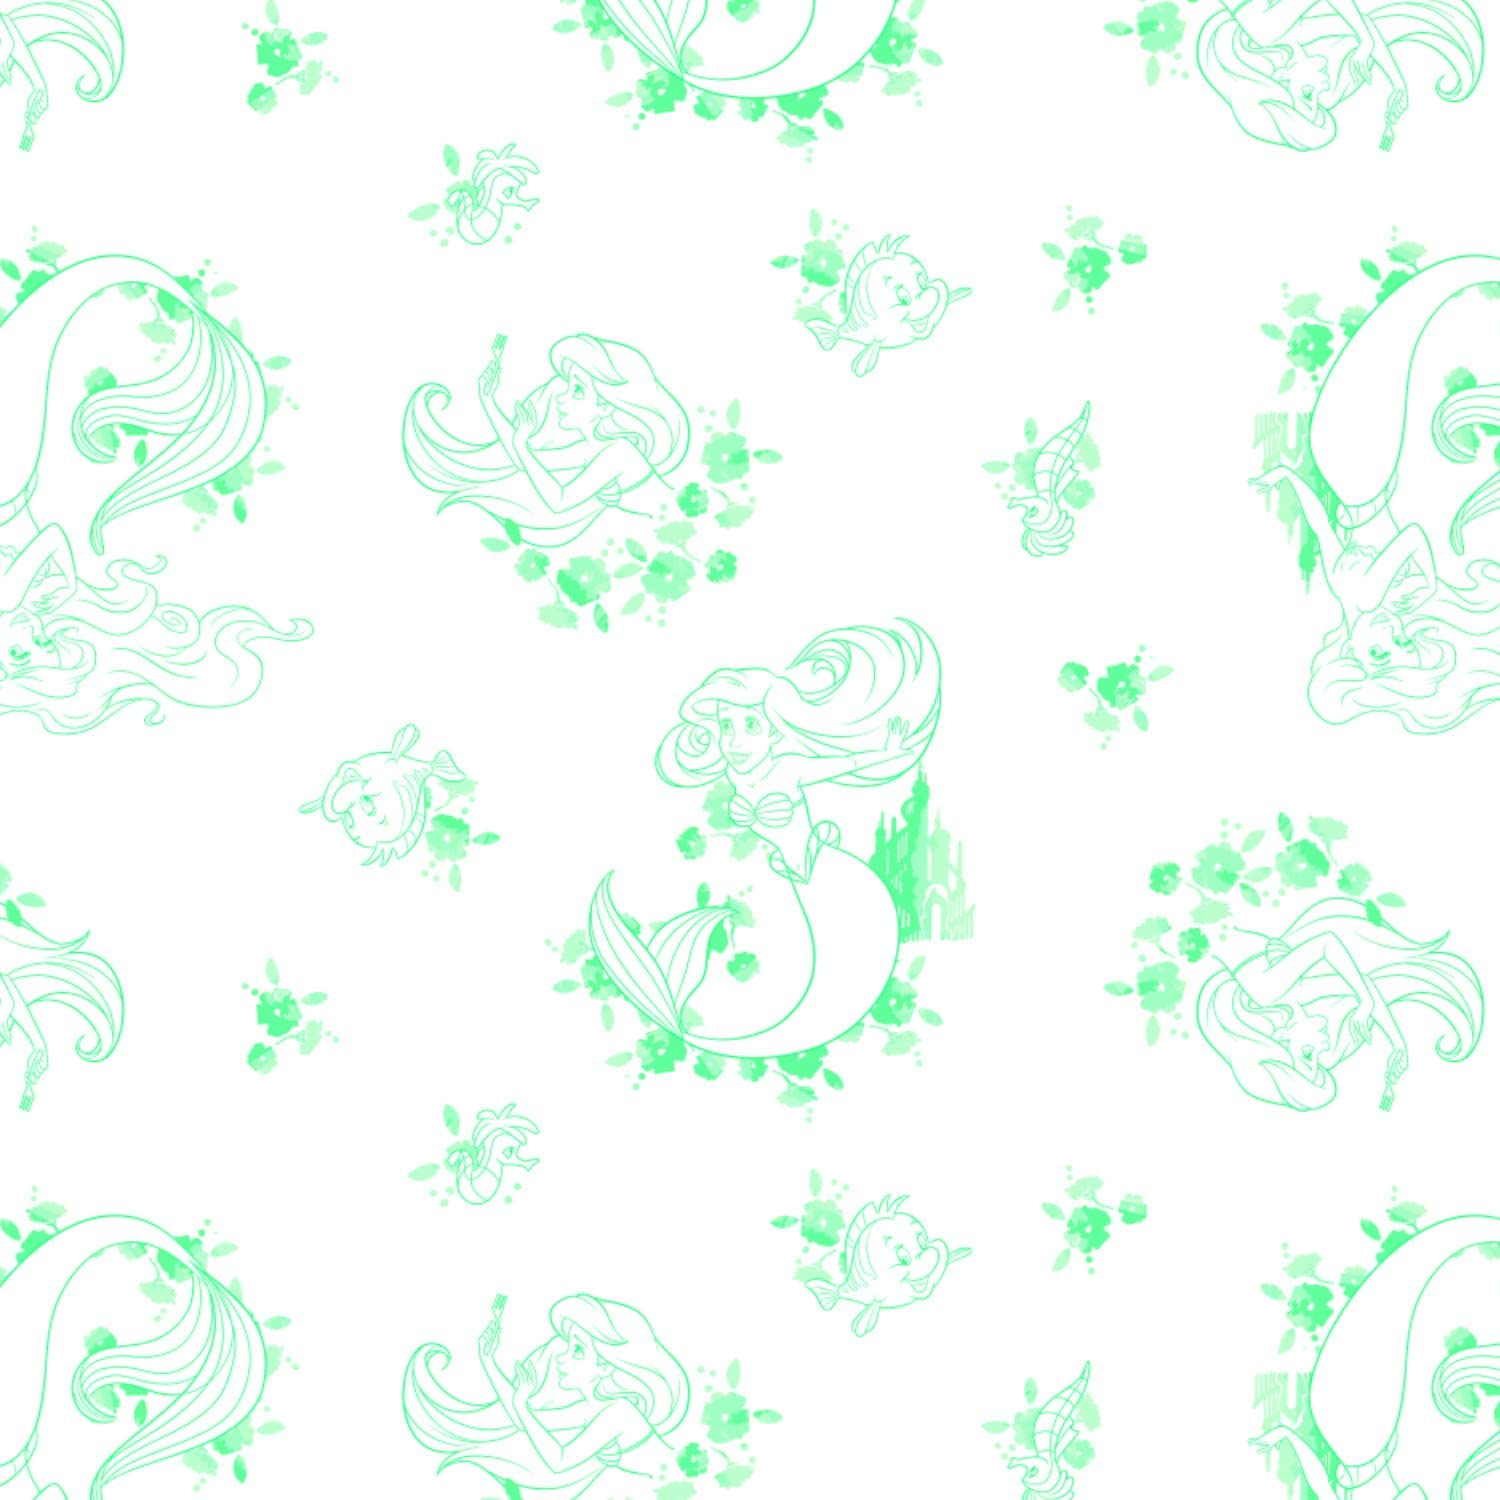 Quilting Cotton for Sewing Max 81% OFF - Disney Collection 100% famous S